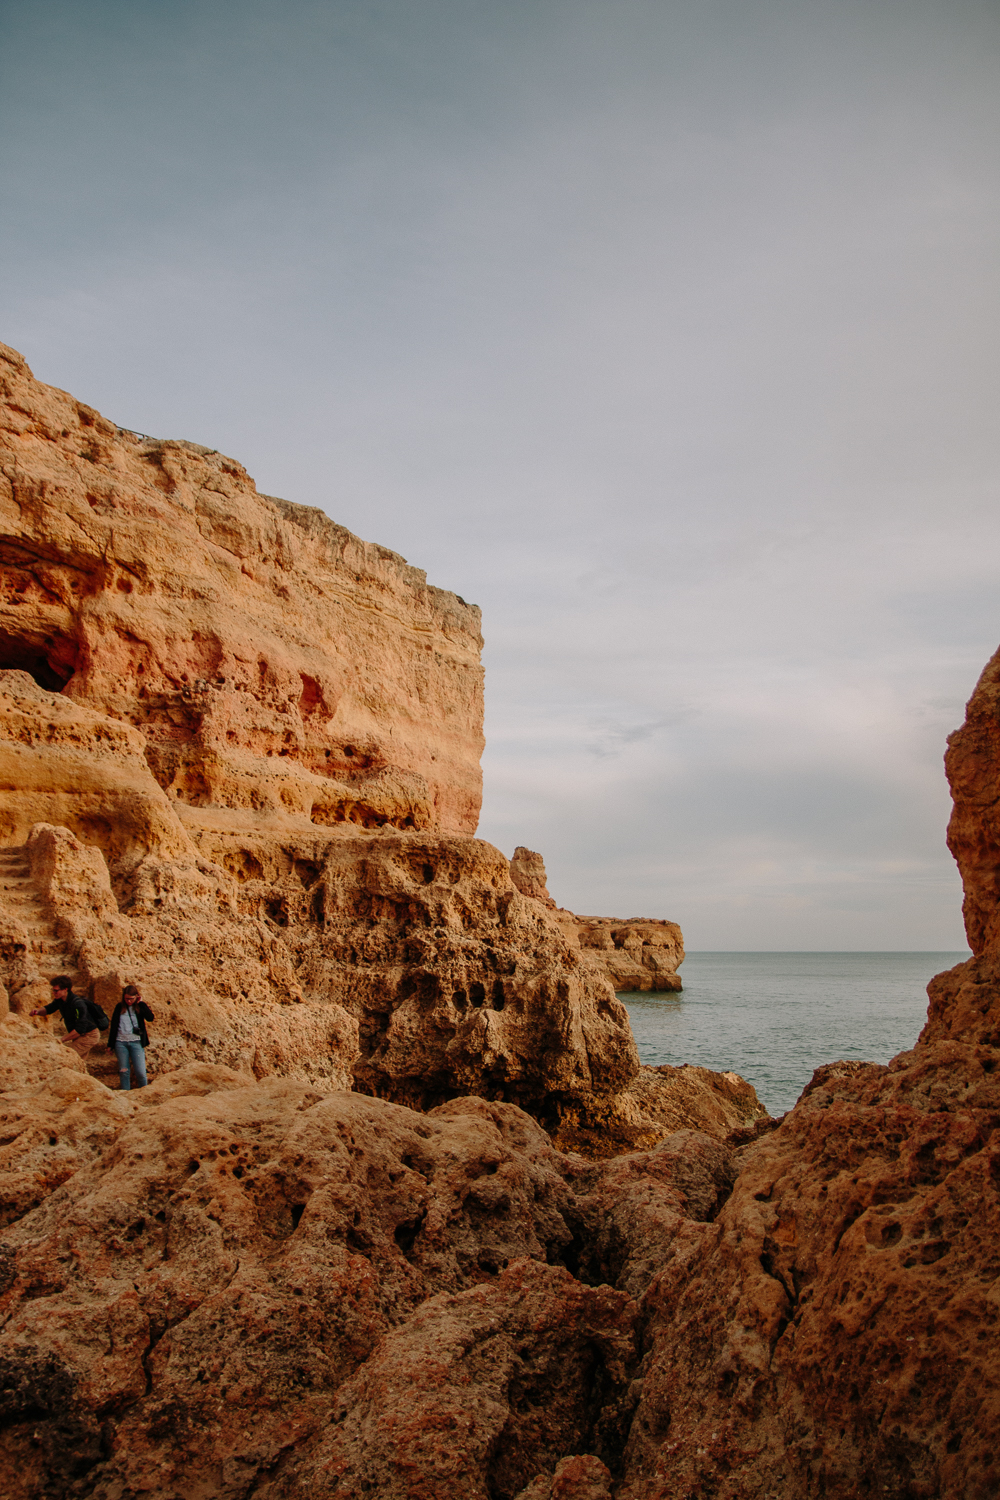 Carvoeiro Caves and Rock Formations